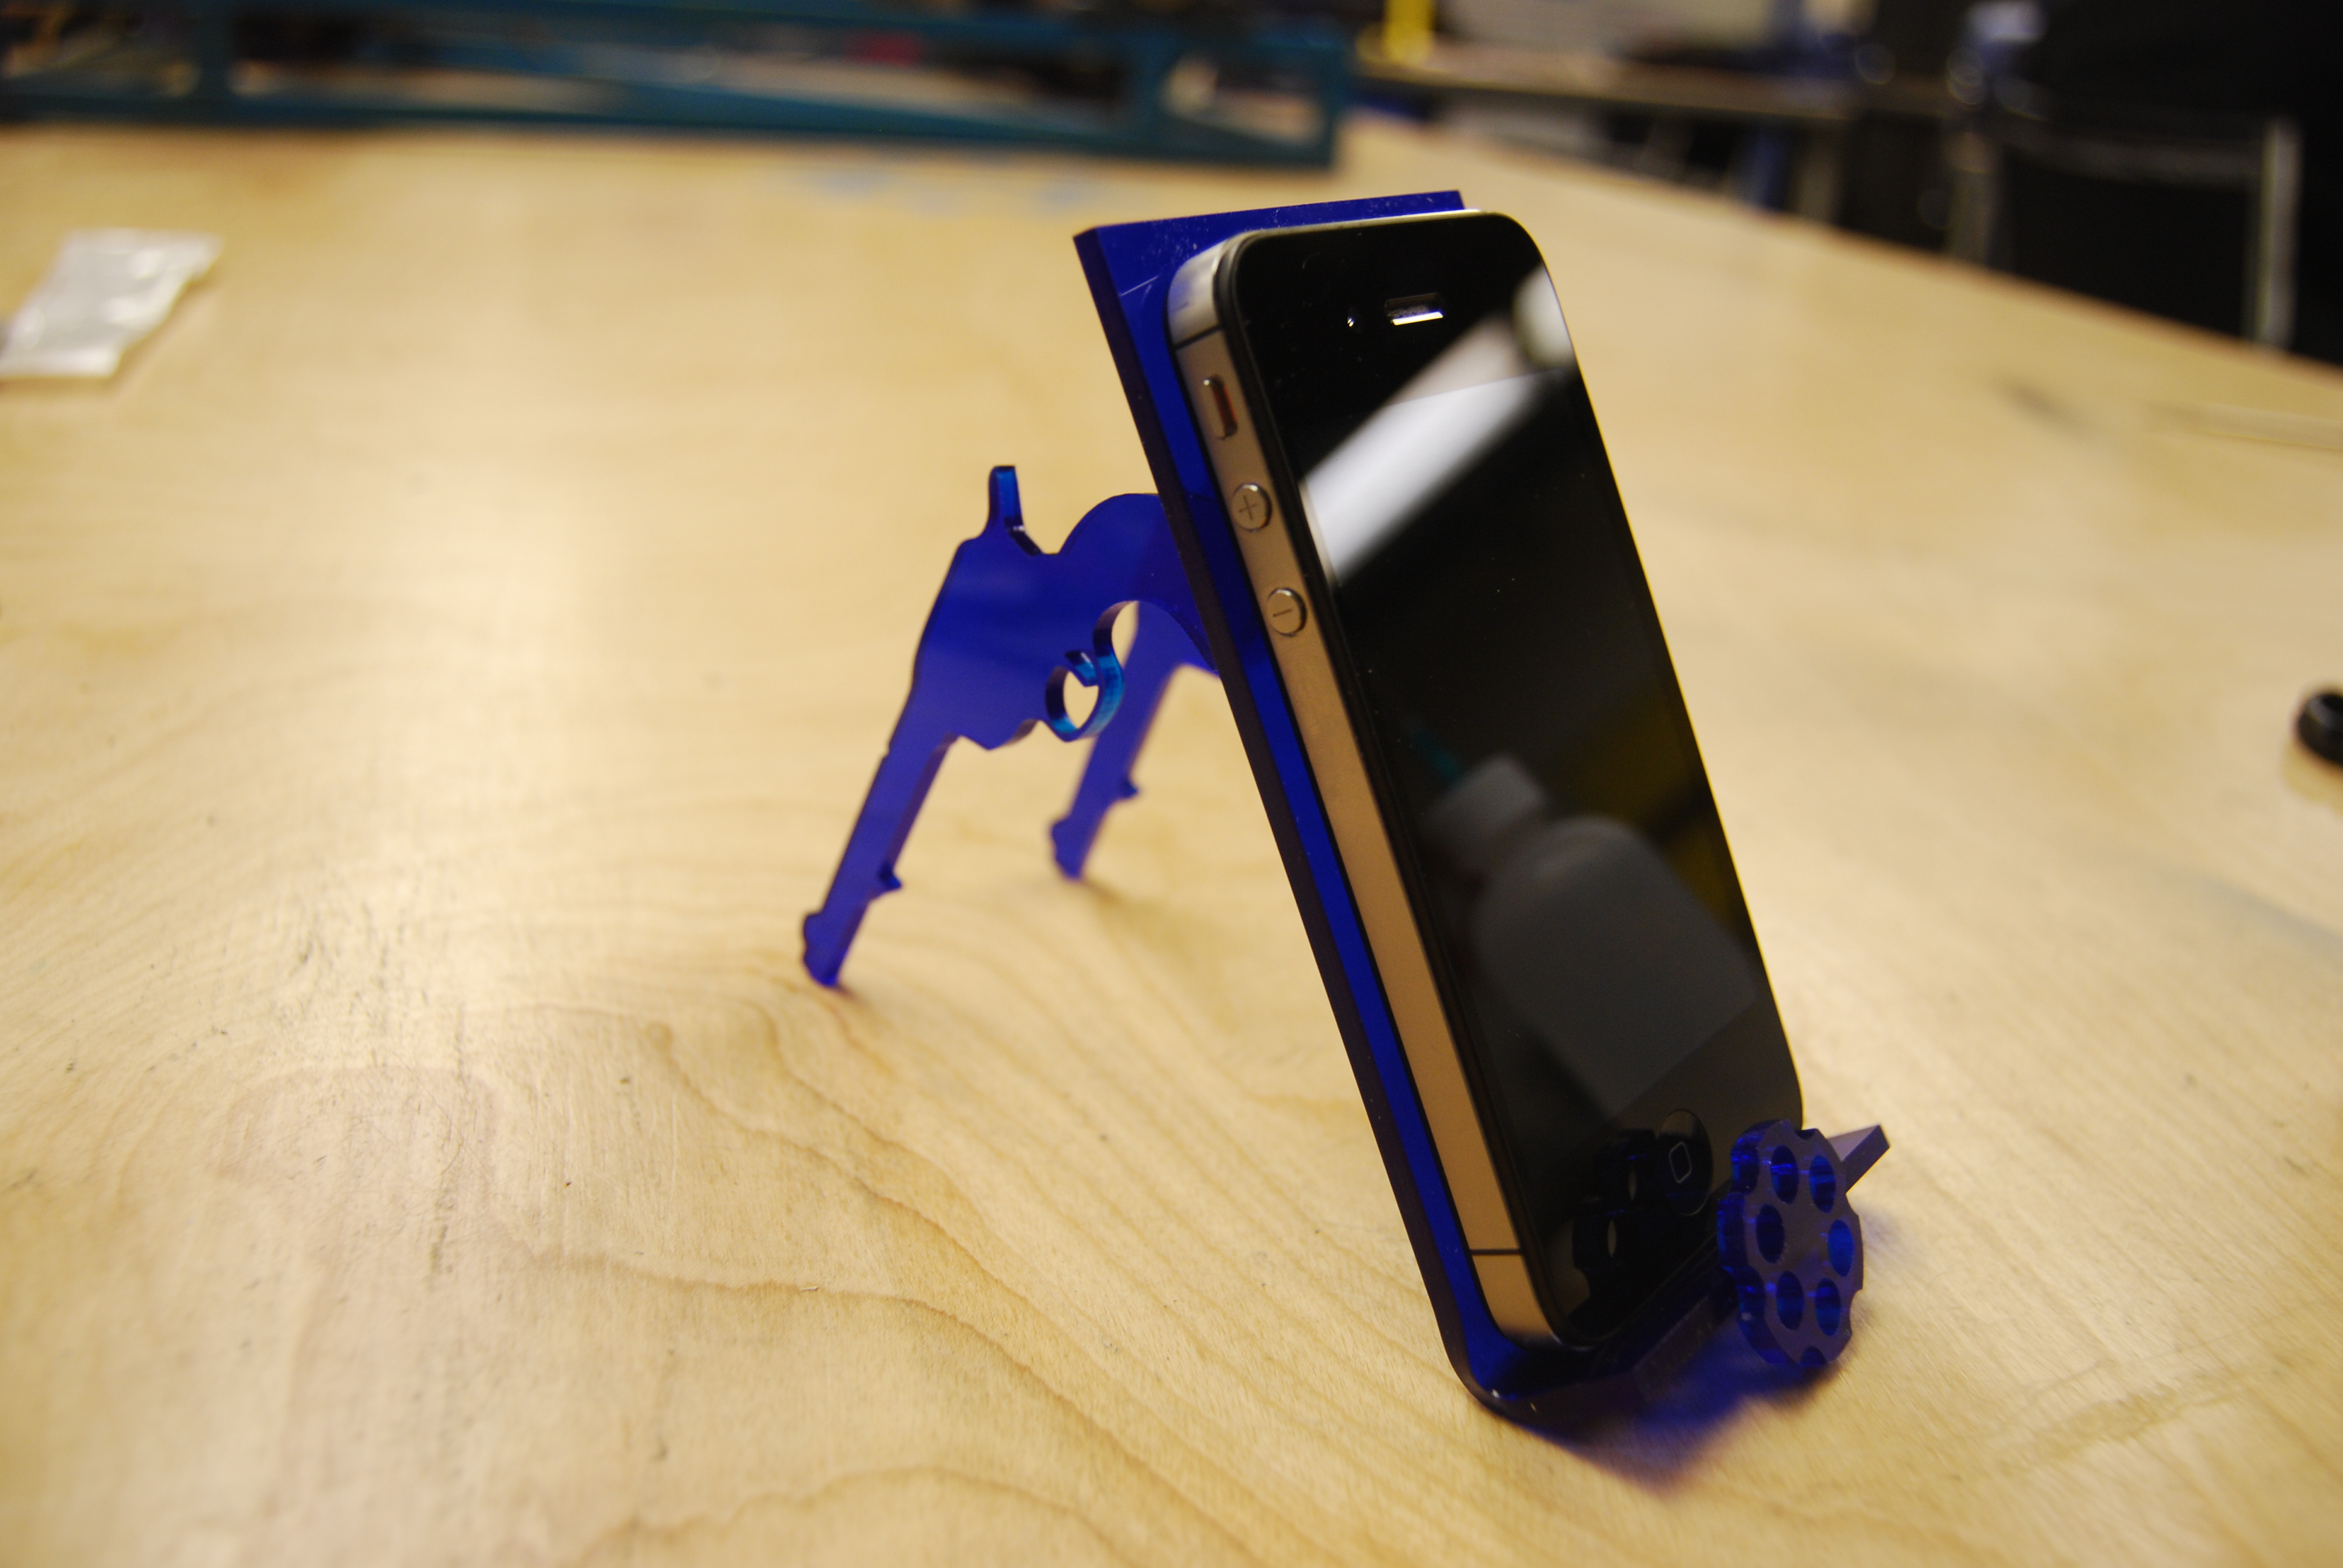 Build Your Own Revolver IPhone Stand